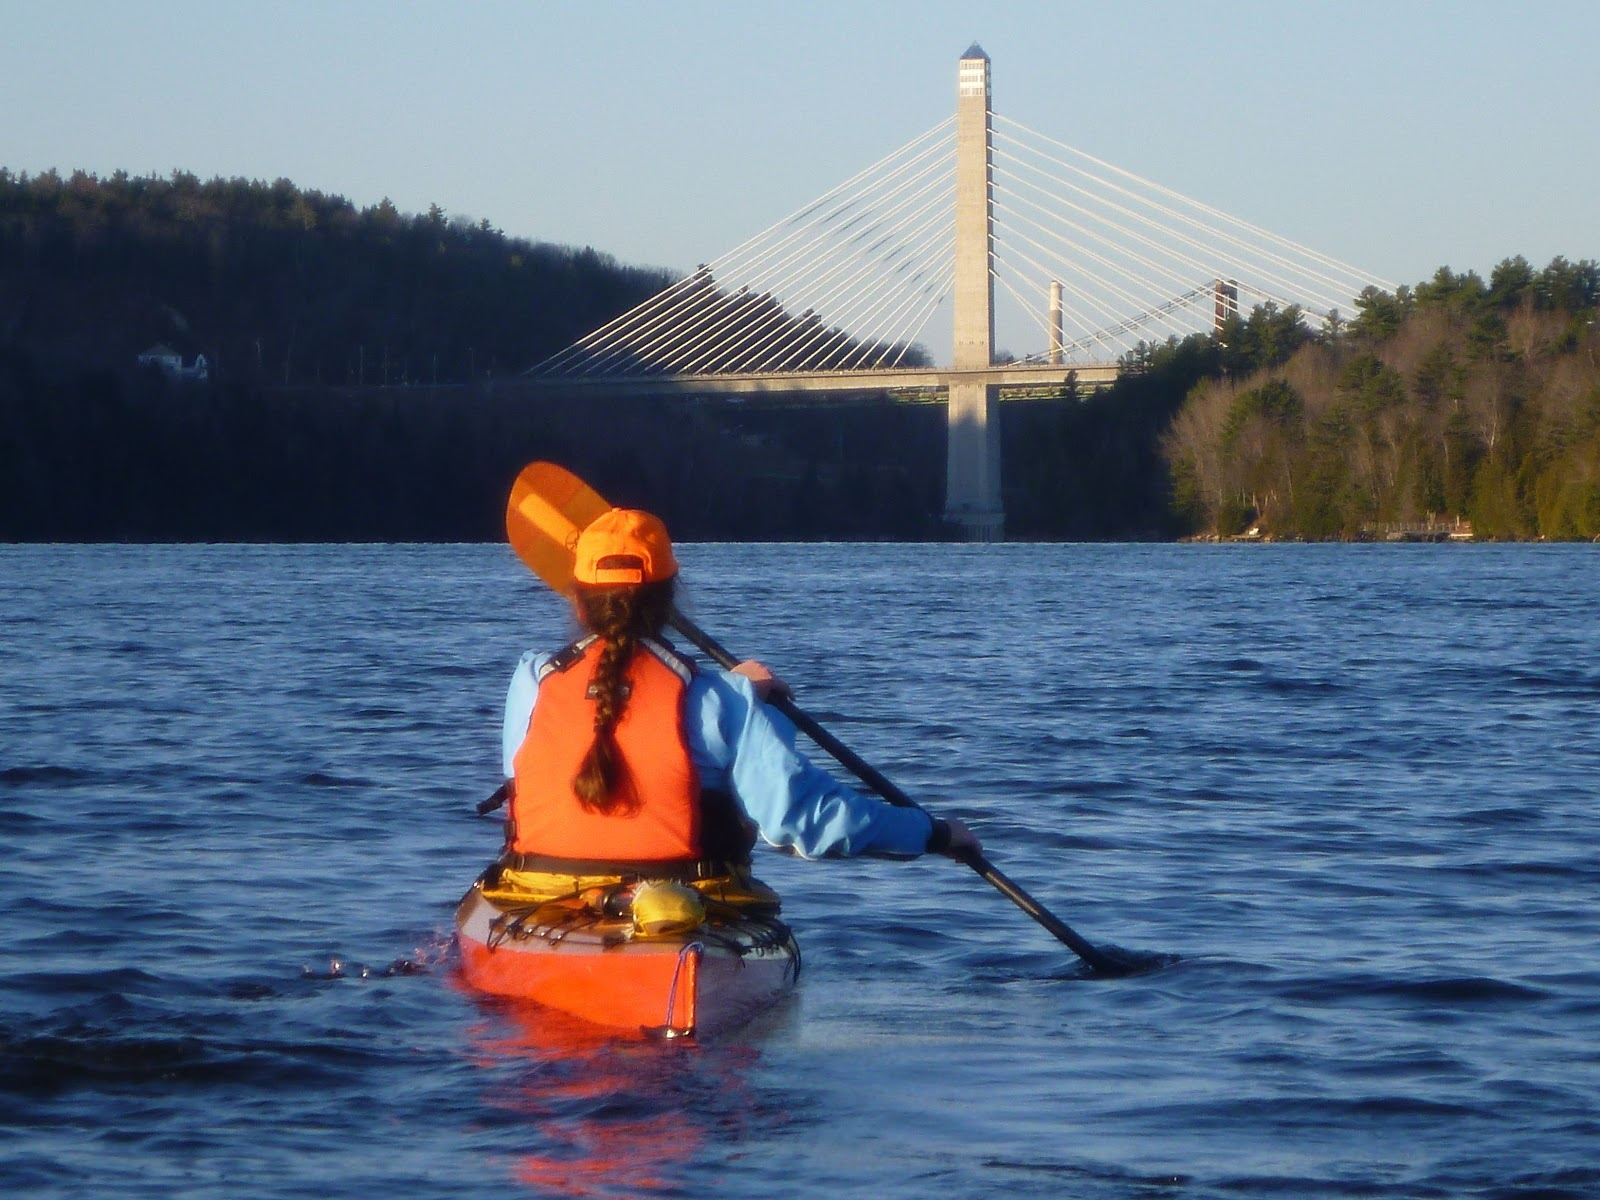 Sea kayak stonington november 2012 on the chart verona island is a four mile chockstone where the penobscot widens from its riverine origins north of bucksport transforming as its channels nvjuhfo Choice Image